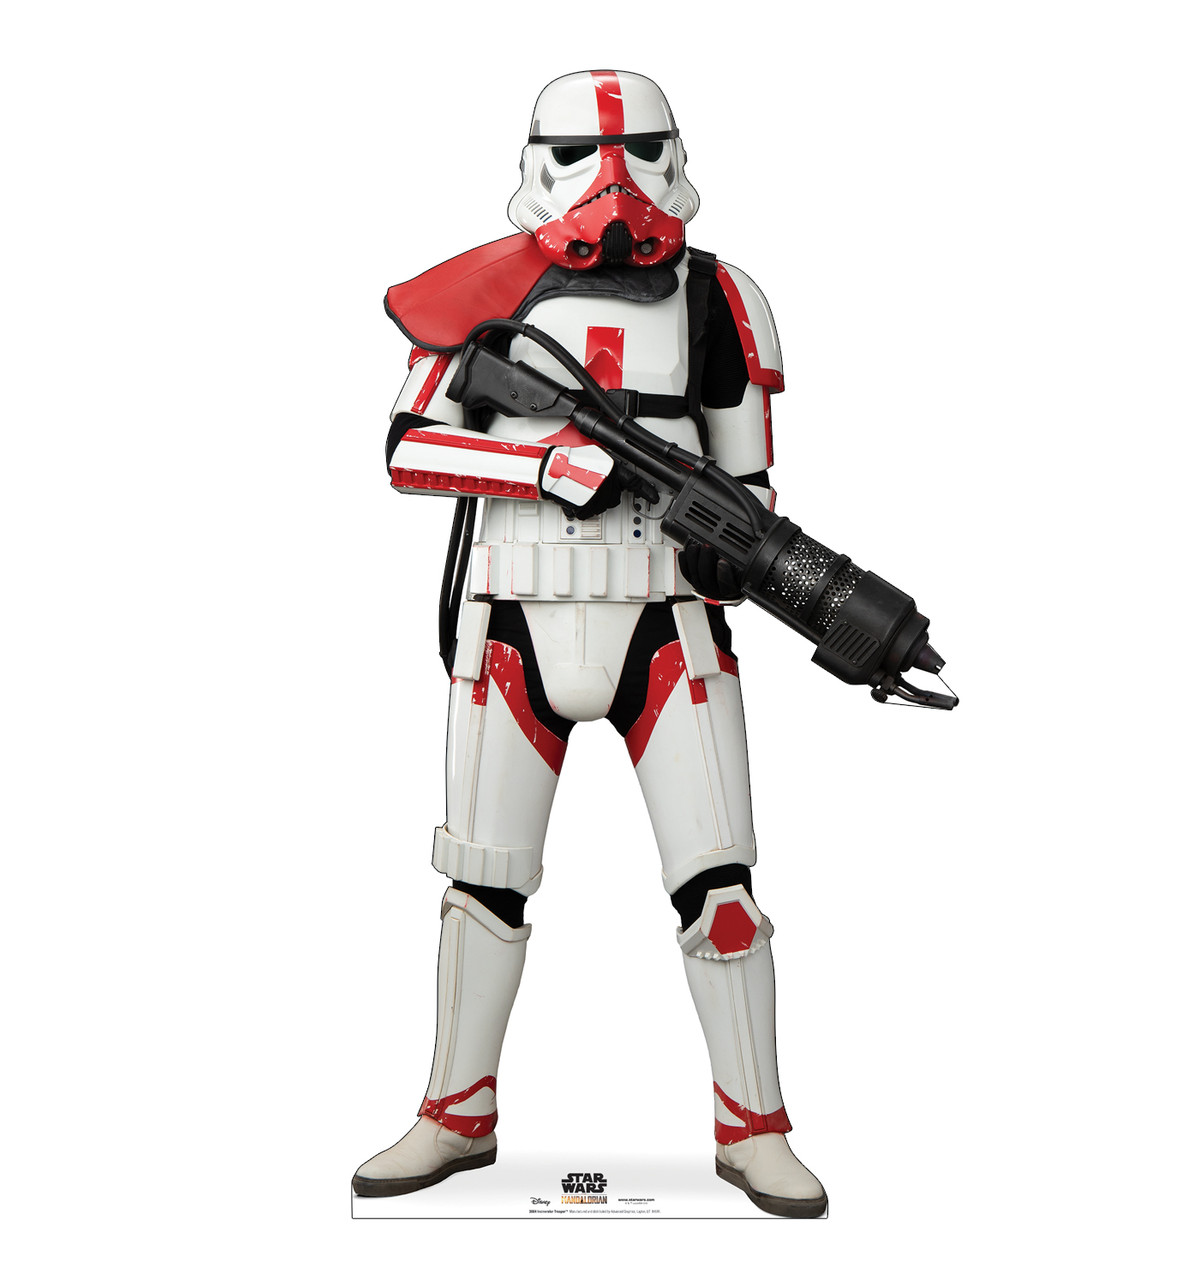 Life-size cardboard standee of Incinerator Trooper from The Mandalorian.